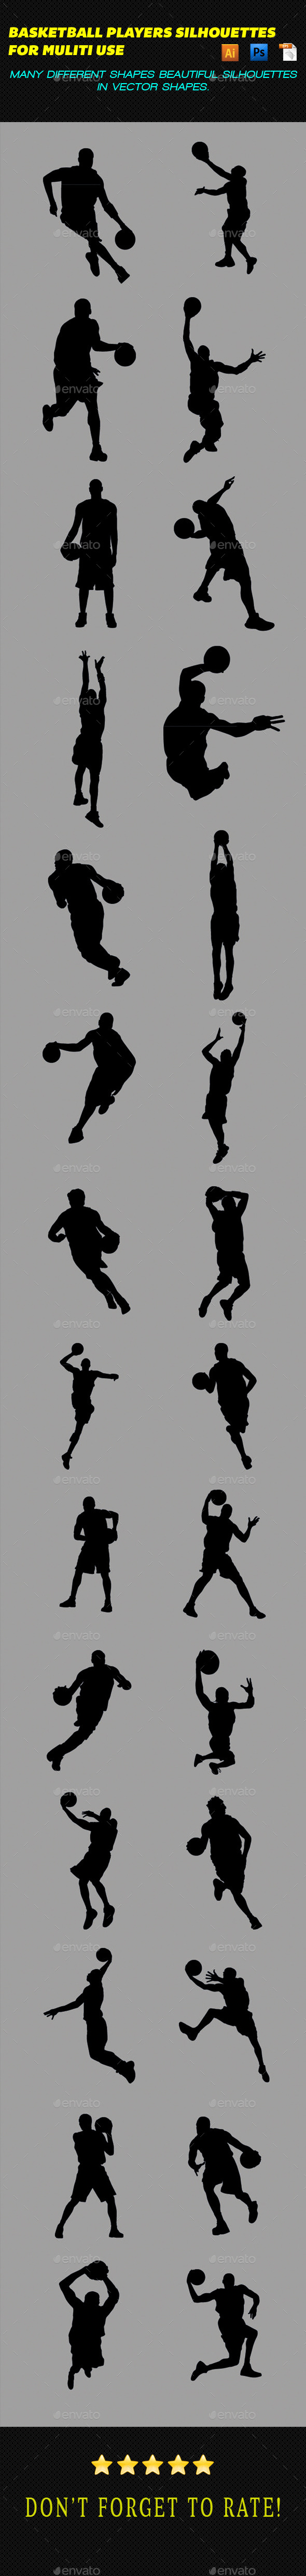 GraphicRiver Basketball Players Silhouettes 9725133